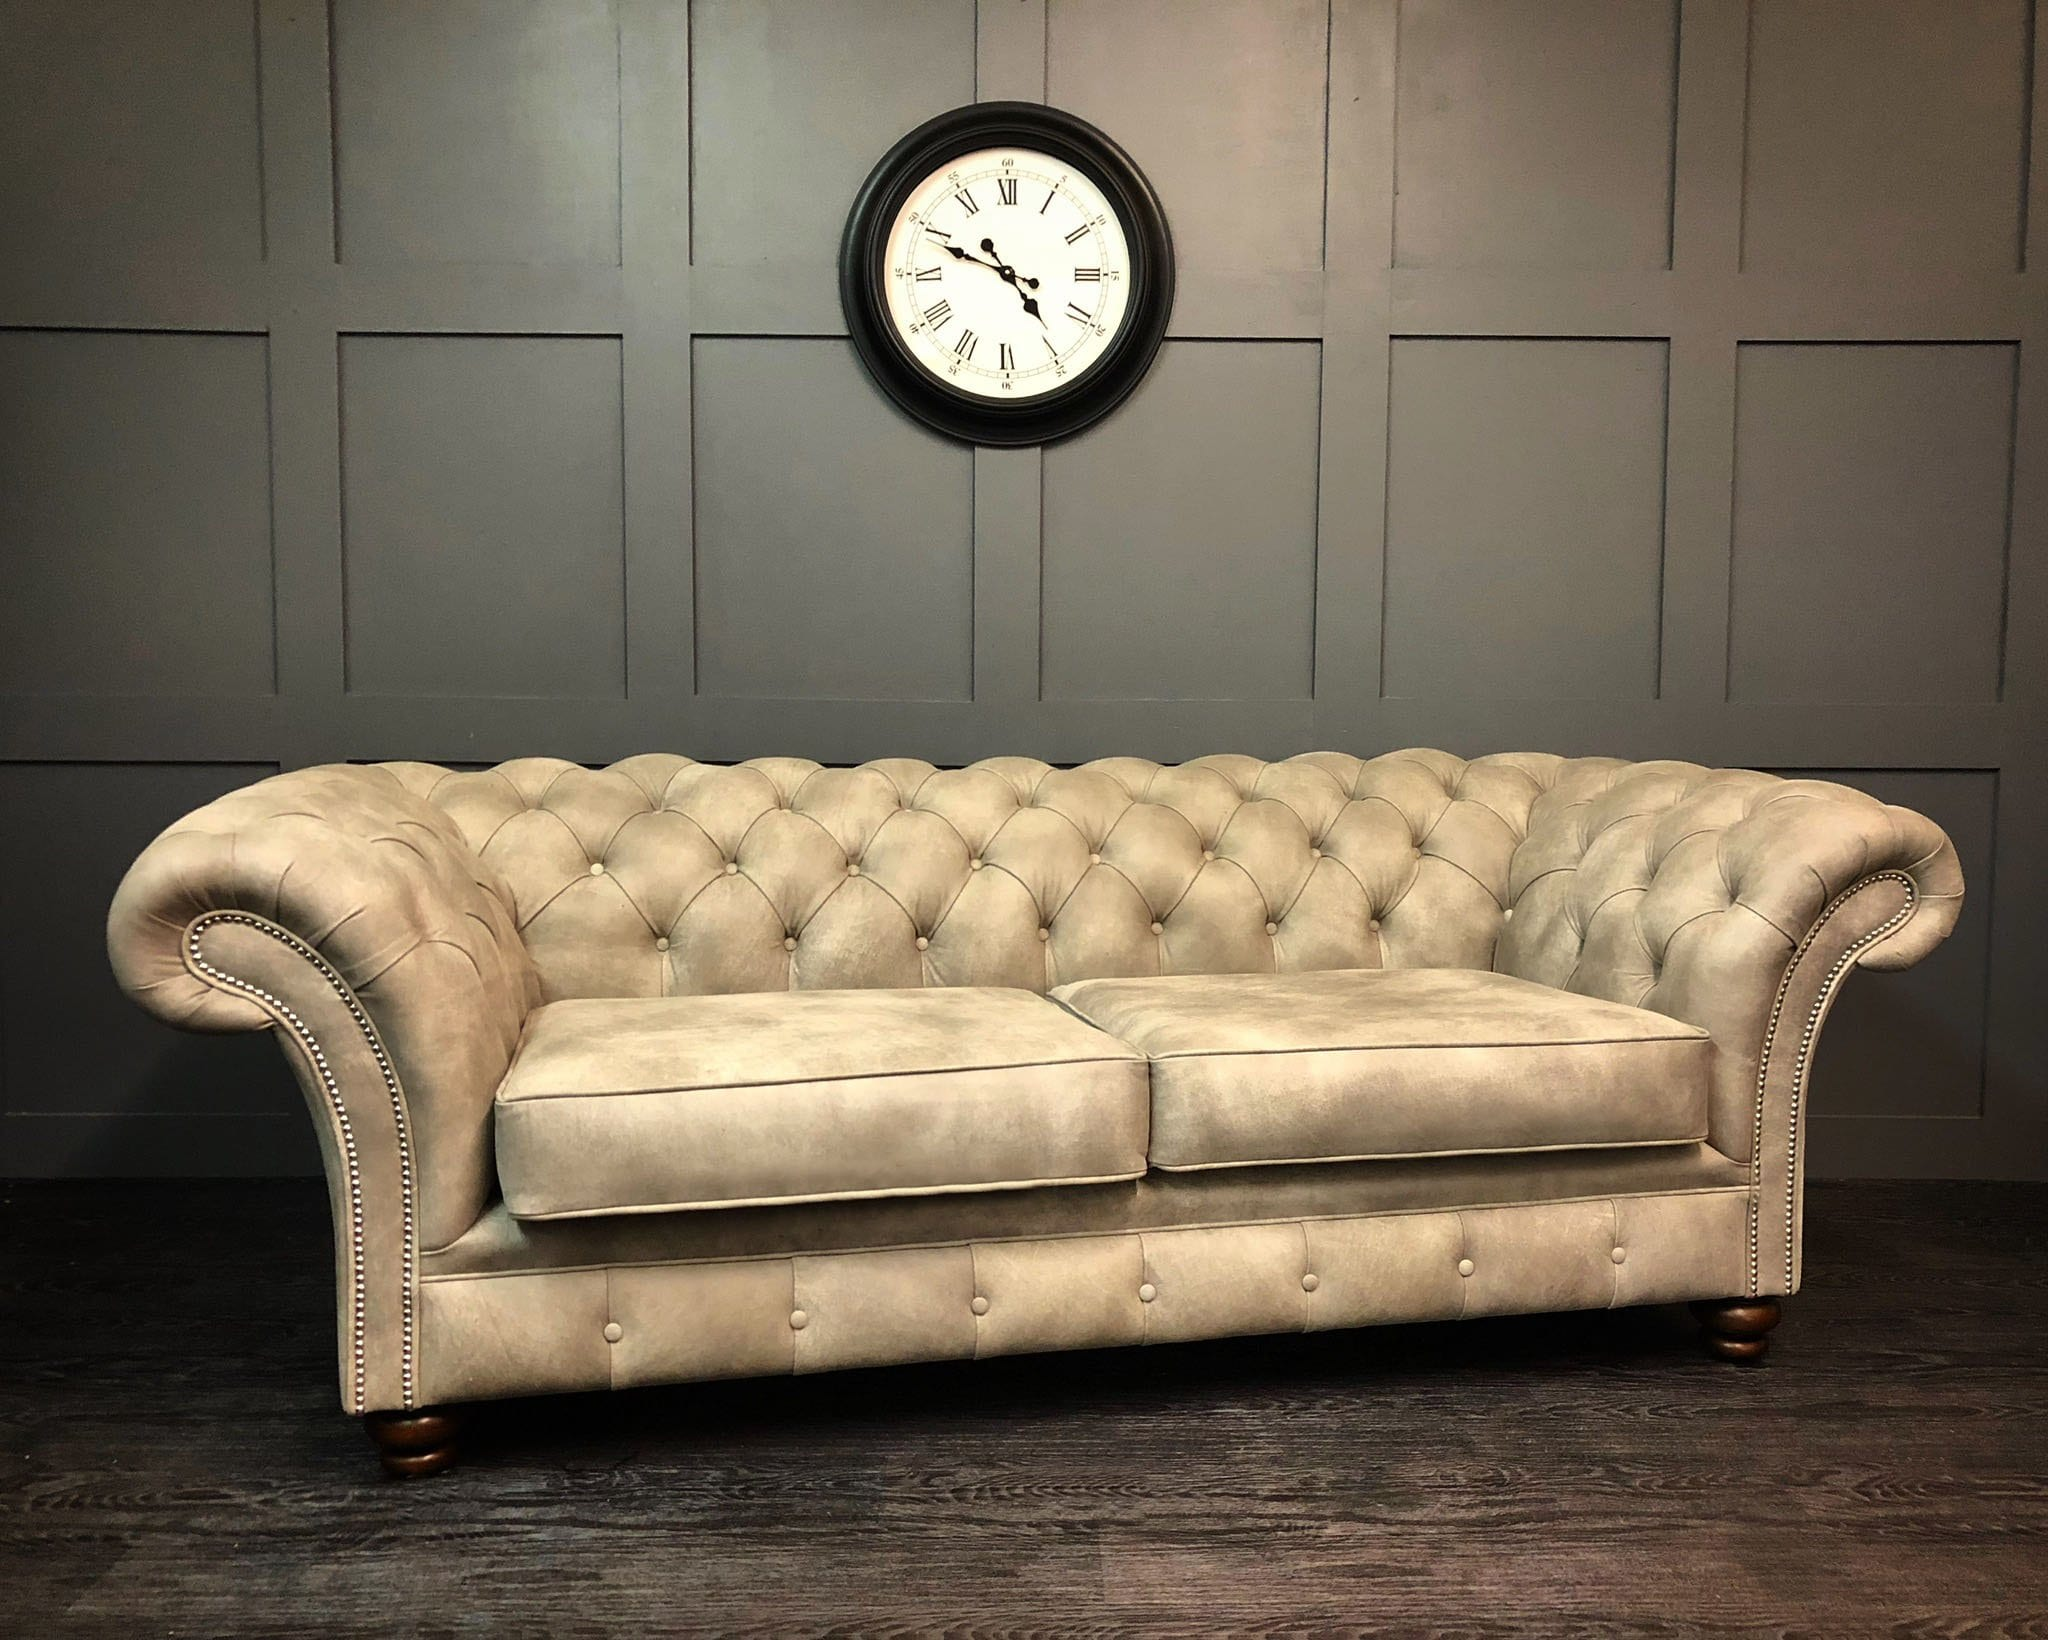 Rustic Leather London 3 seat chesterfield